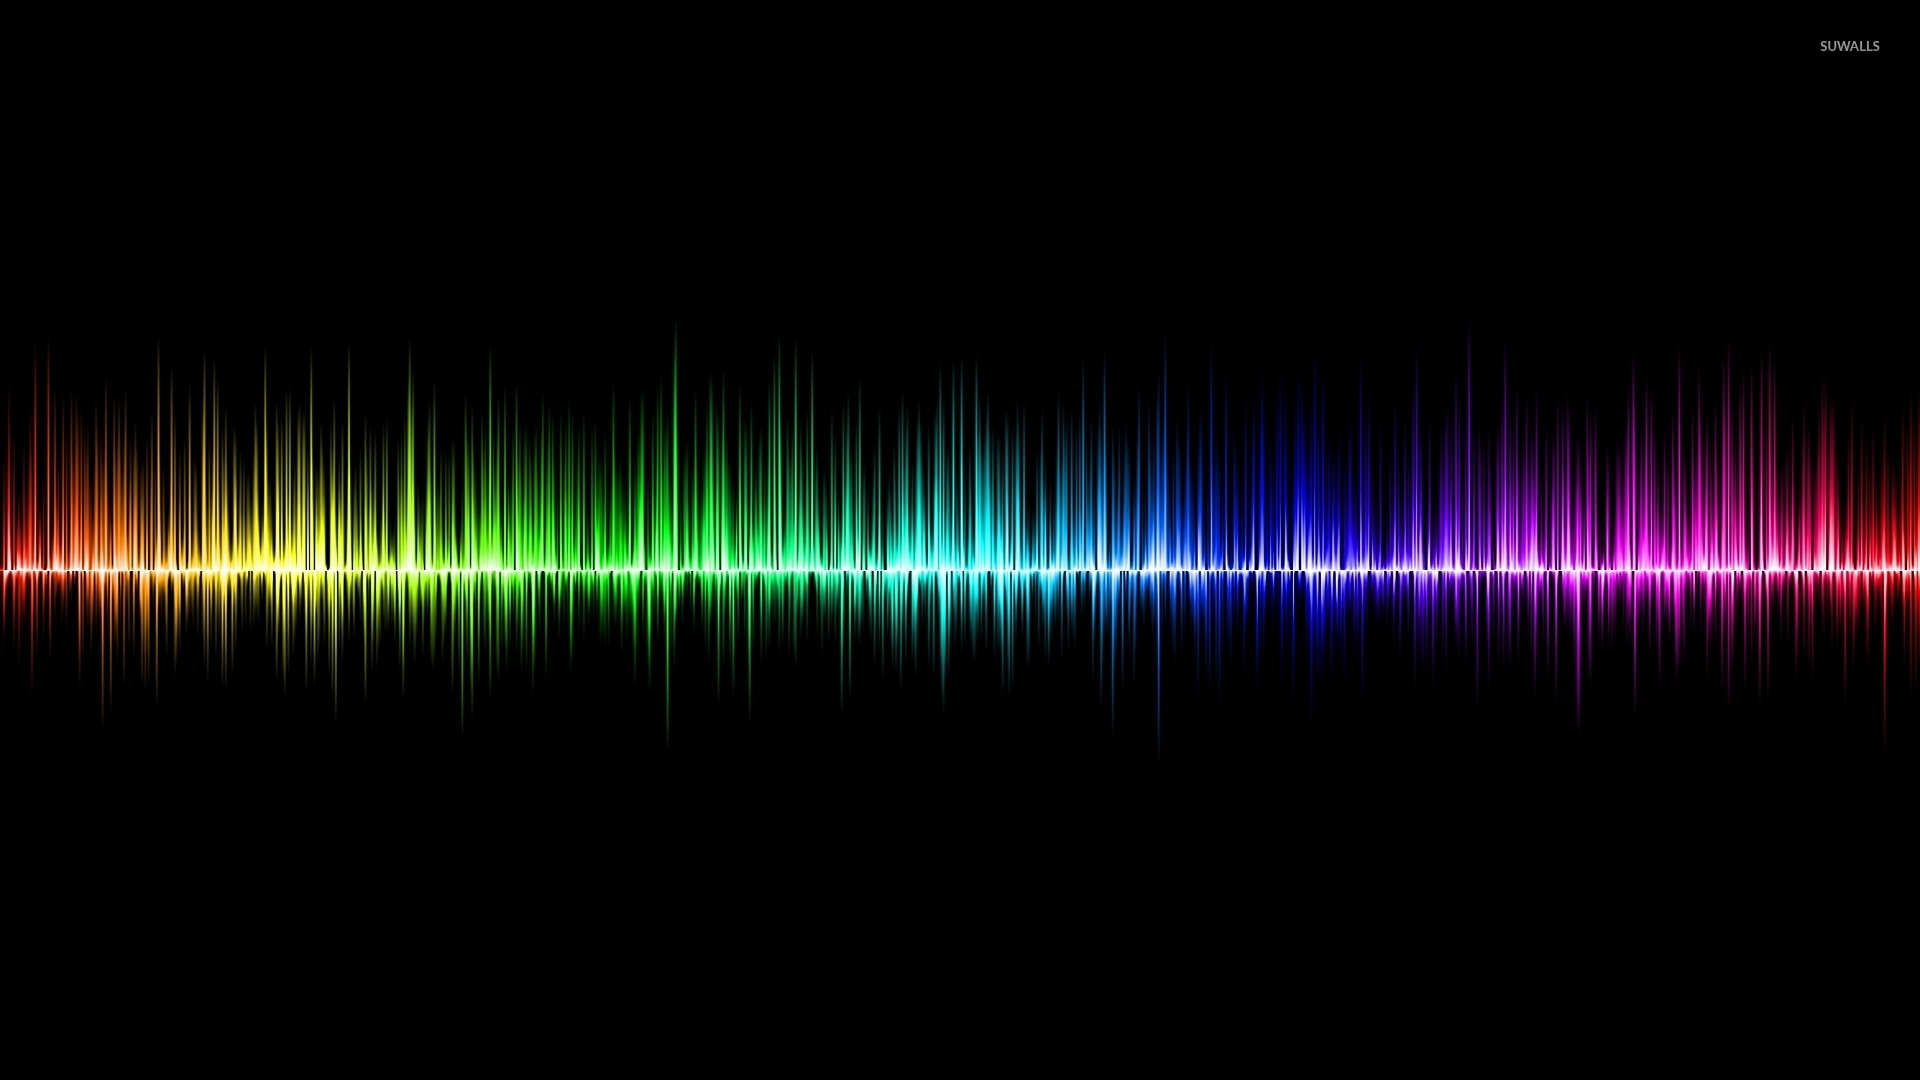 Sound waves wallpaper   Abstract wallpapers   34031 1920x1080